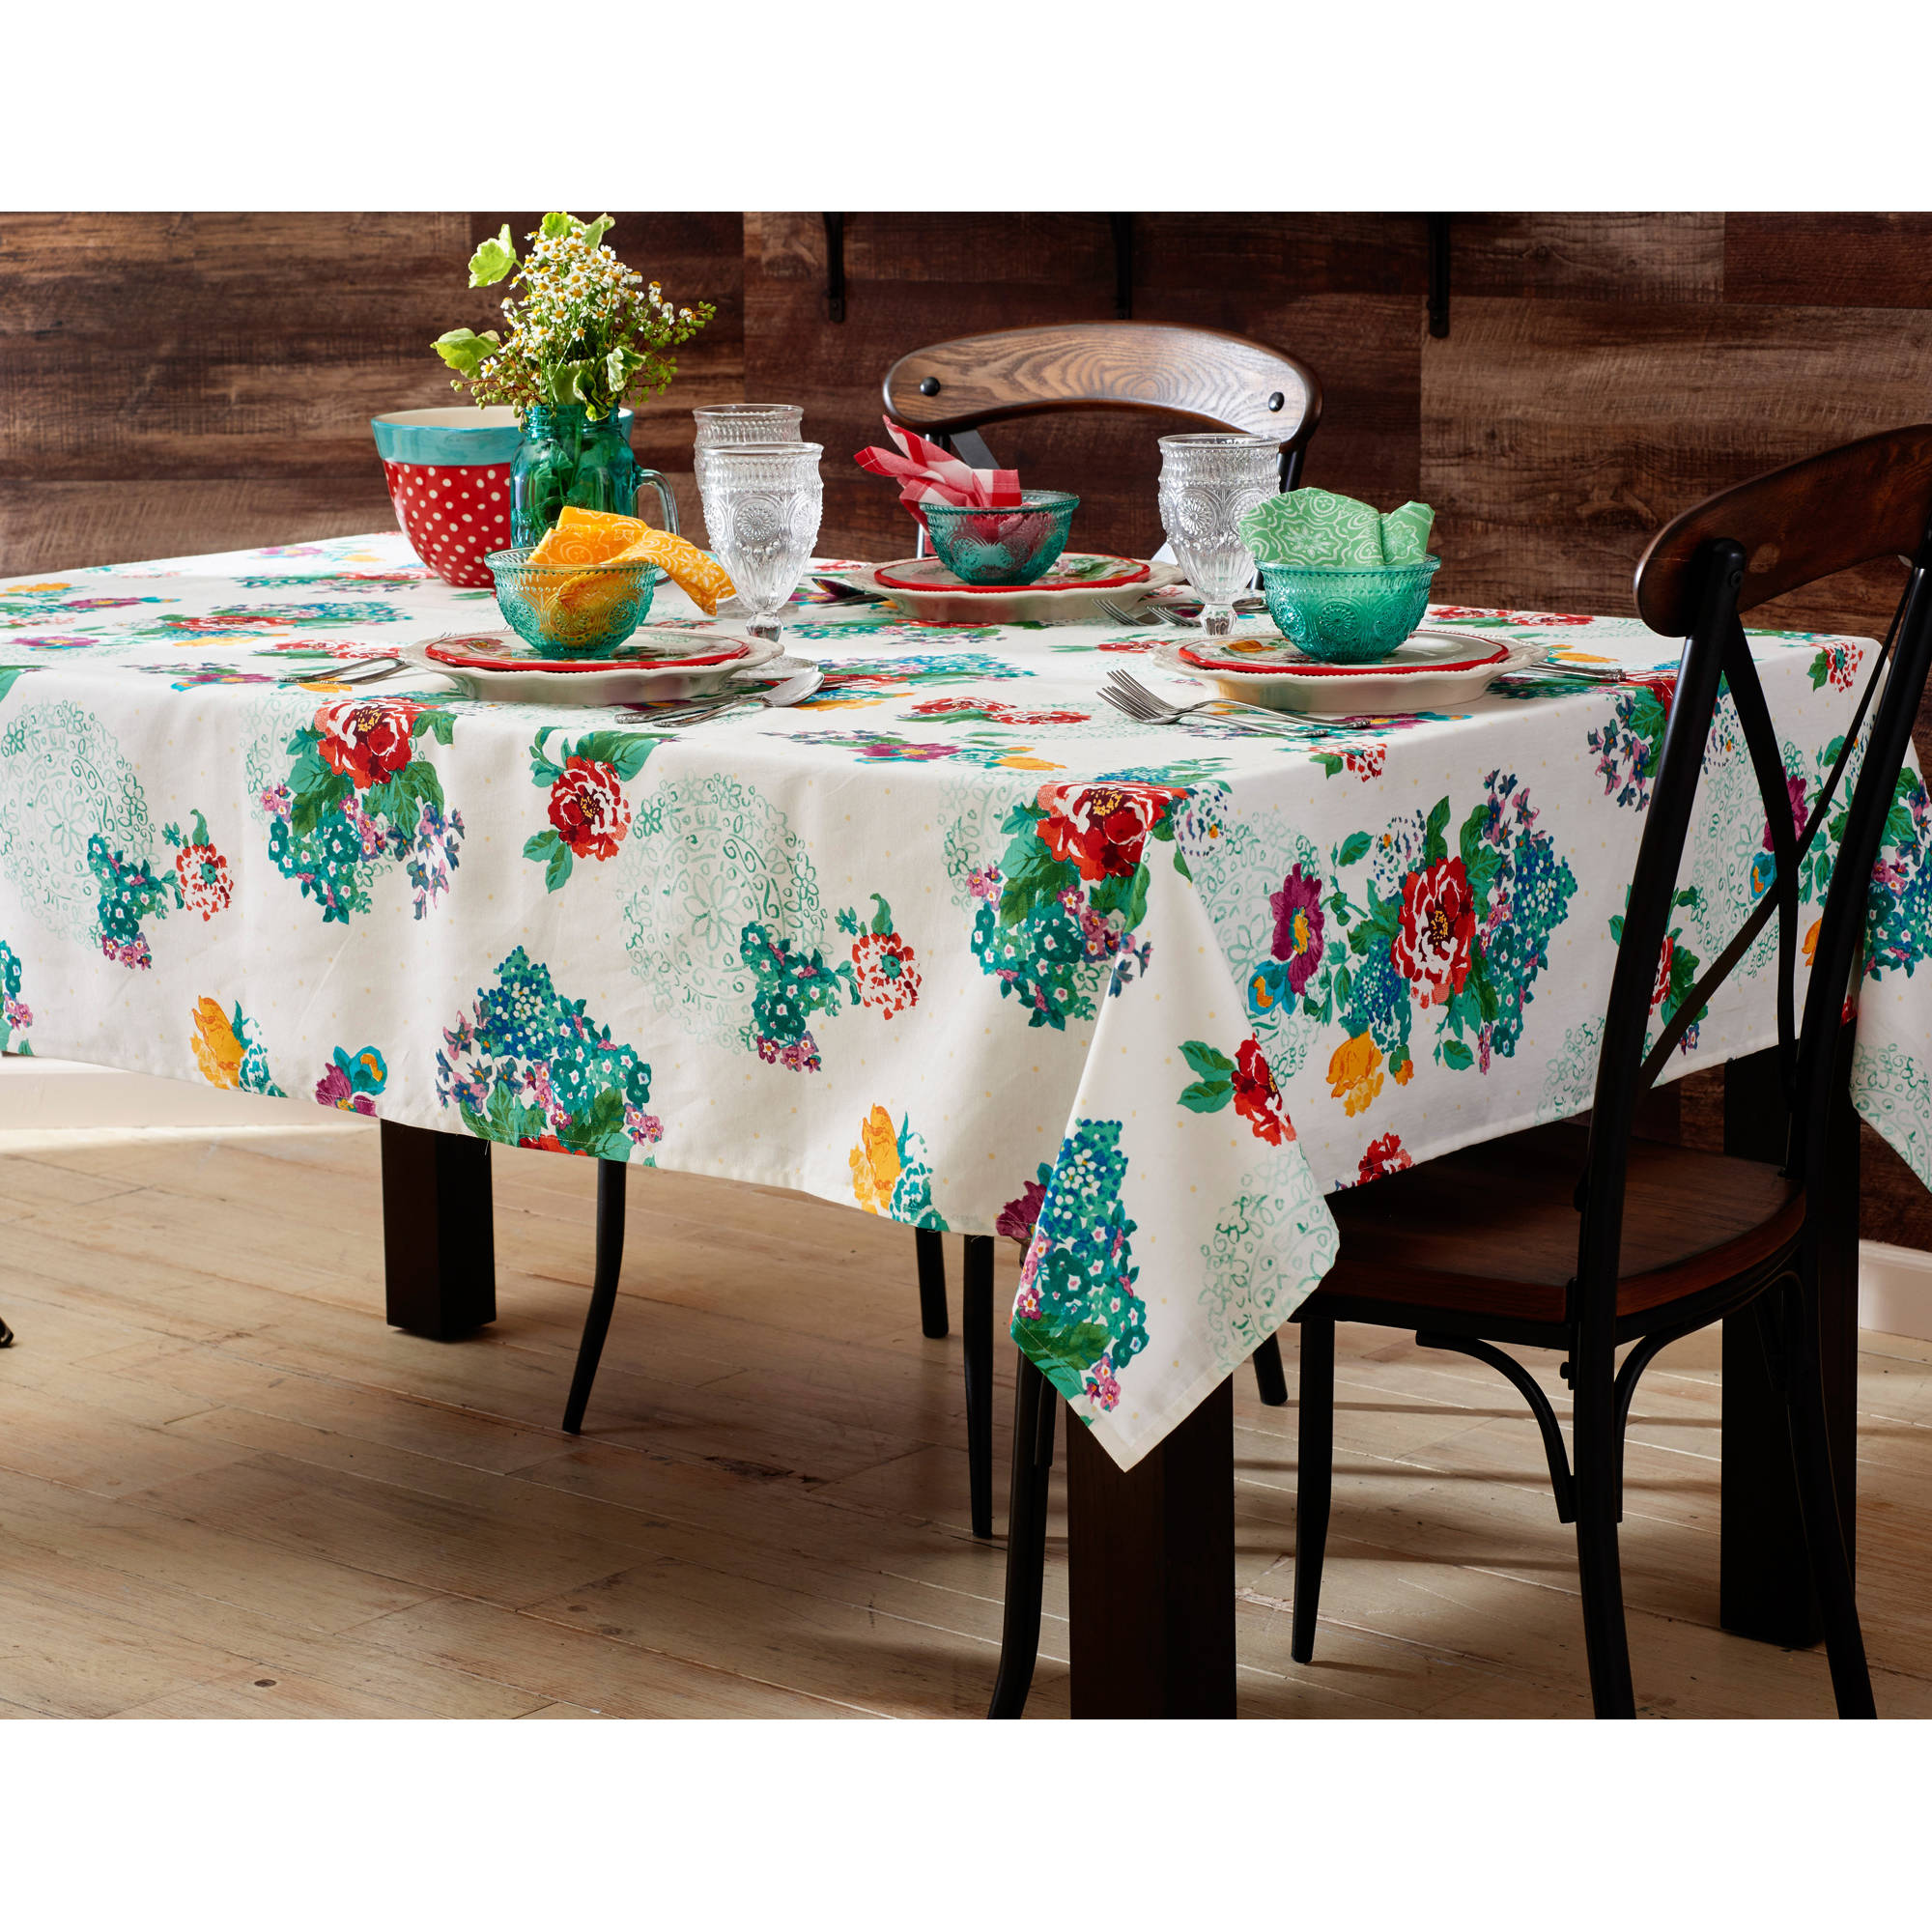 The Pioneer Woman Country Garden Tablecloth 52 X 70 In Com